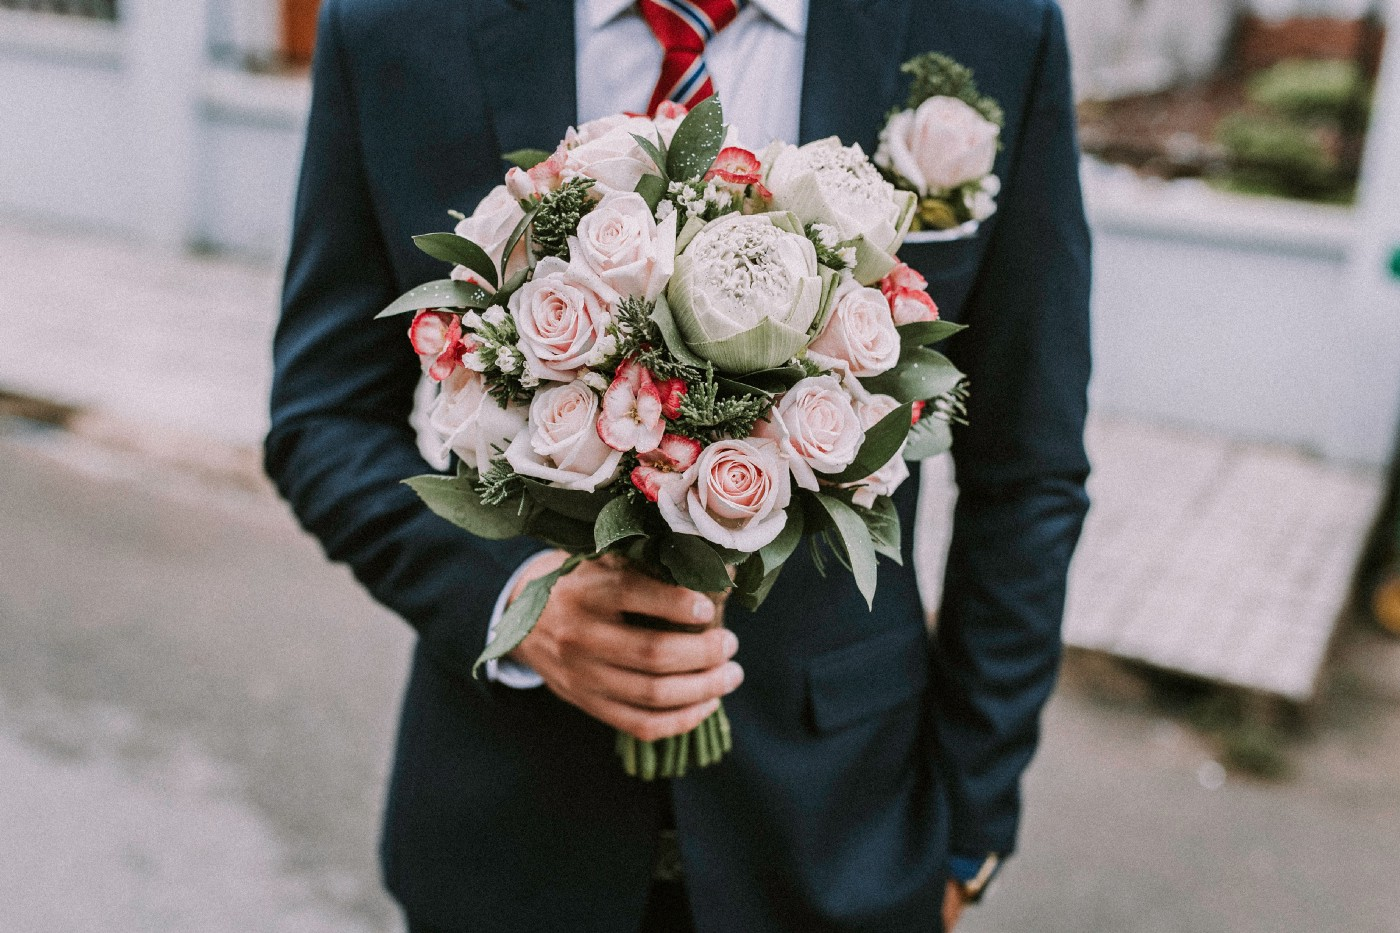 Photo of the torso of a man in a suit holding a bouquet of flowers.